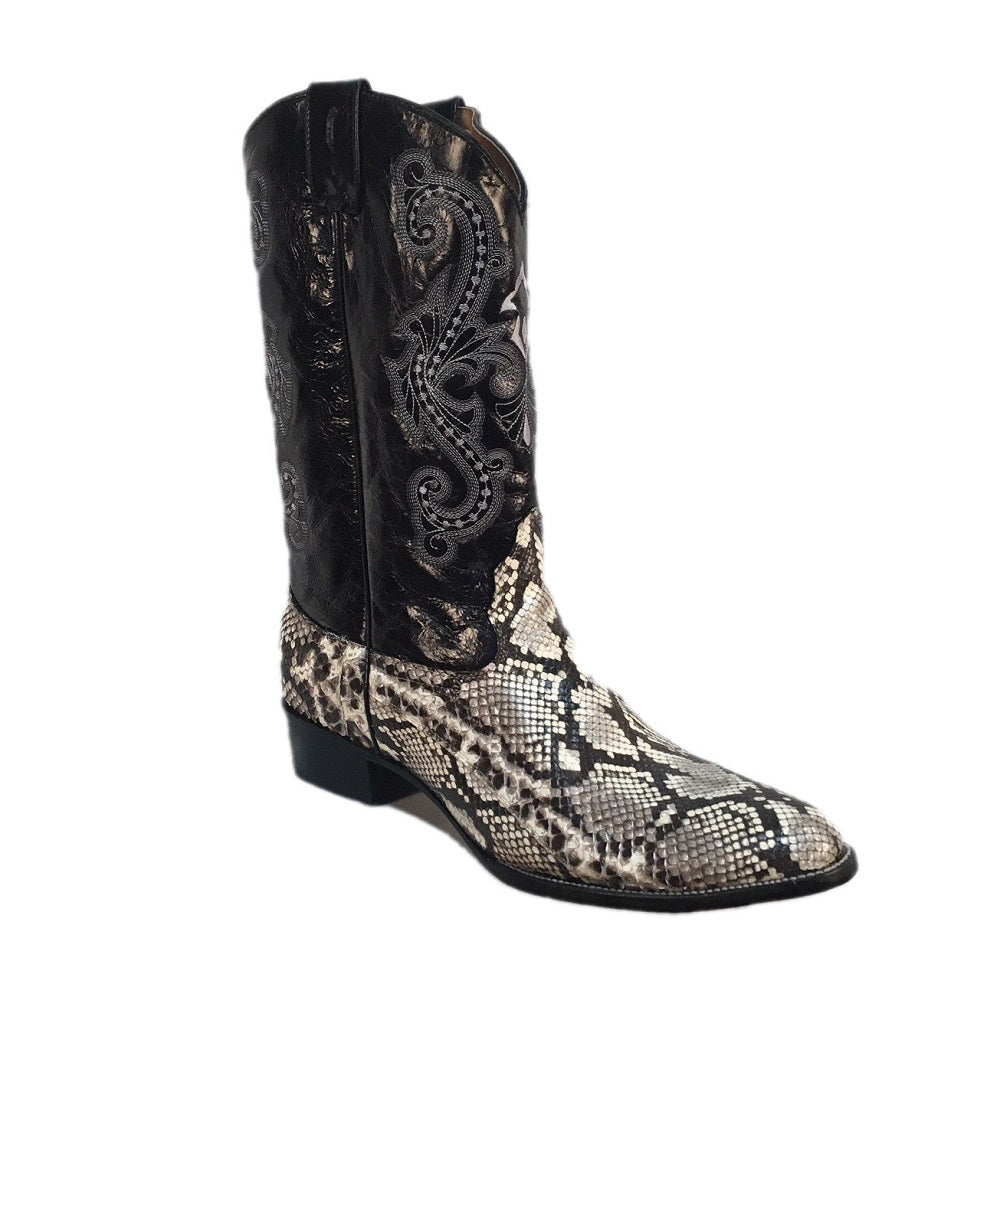 6def2b4ff03 CORRAL MEN'S CIRCLE G NATURAL BELLY CUT PYTHON BOOT- STYLE #L5044 ...